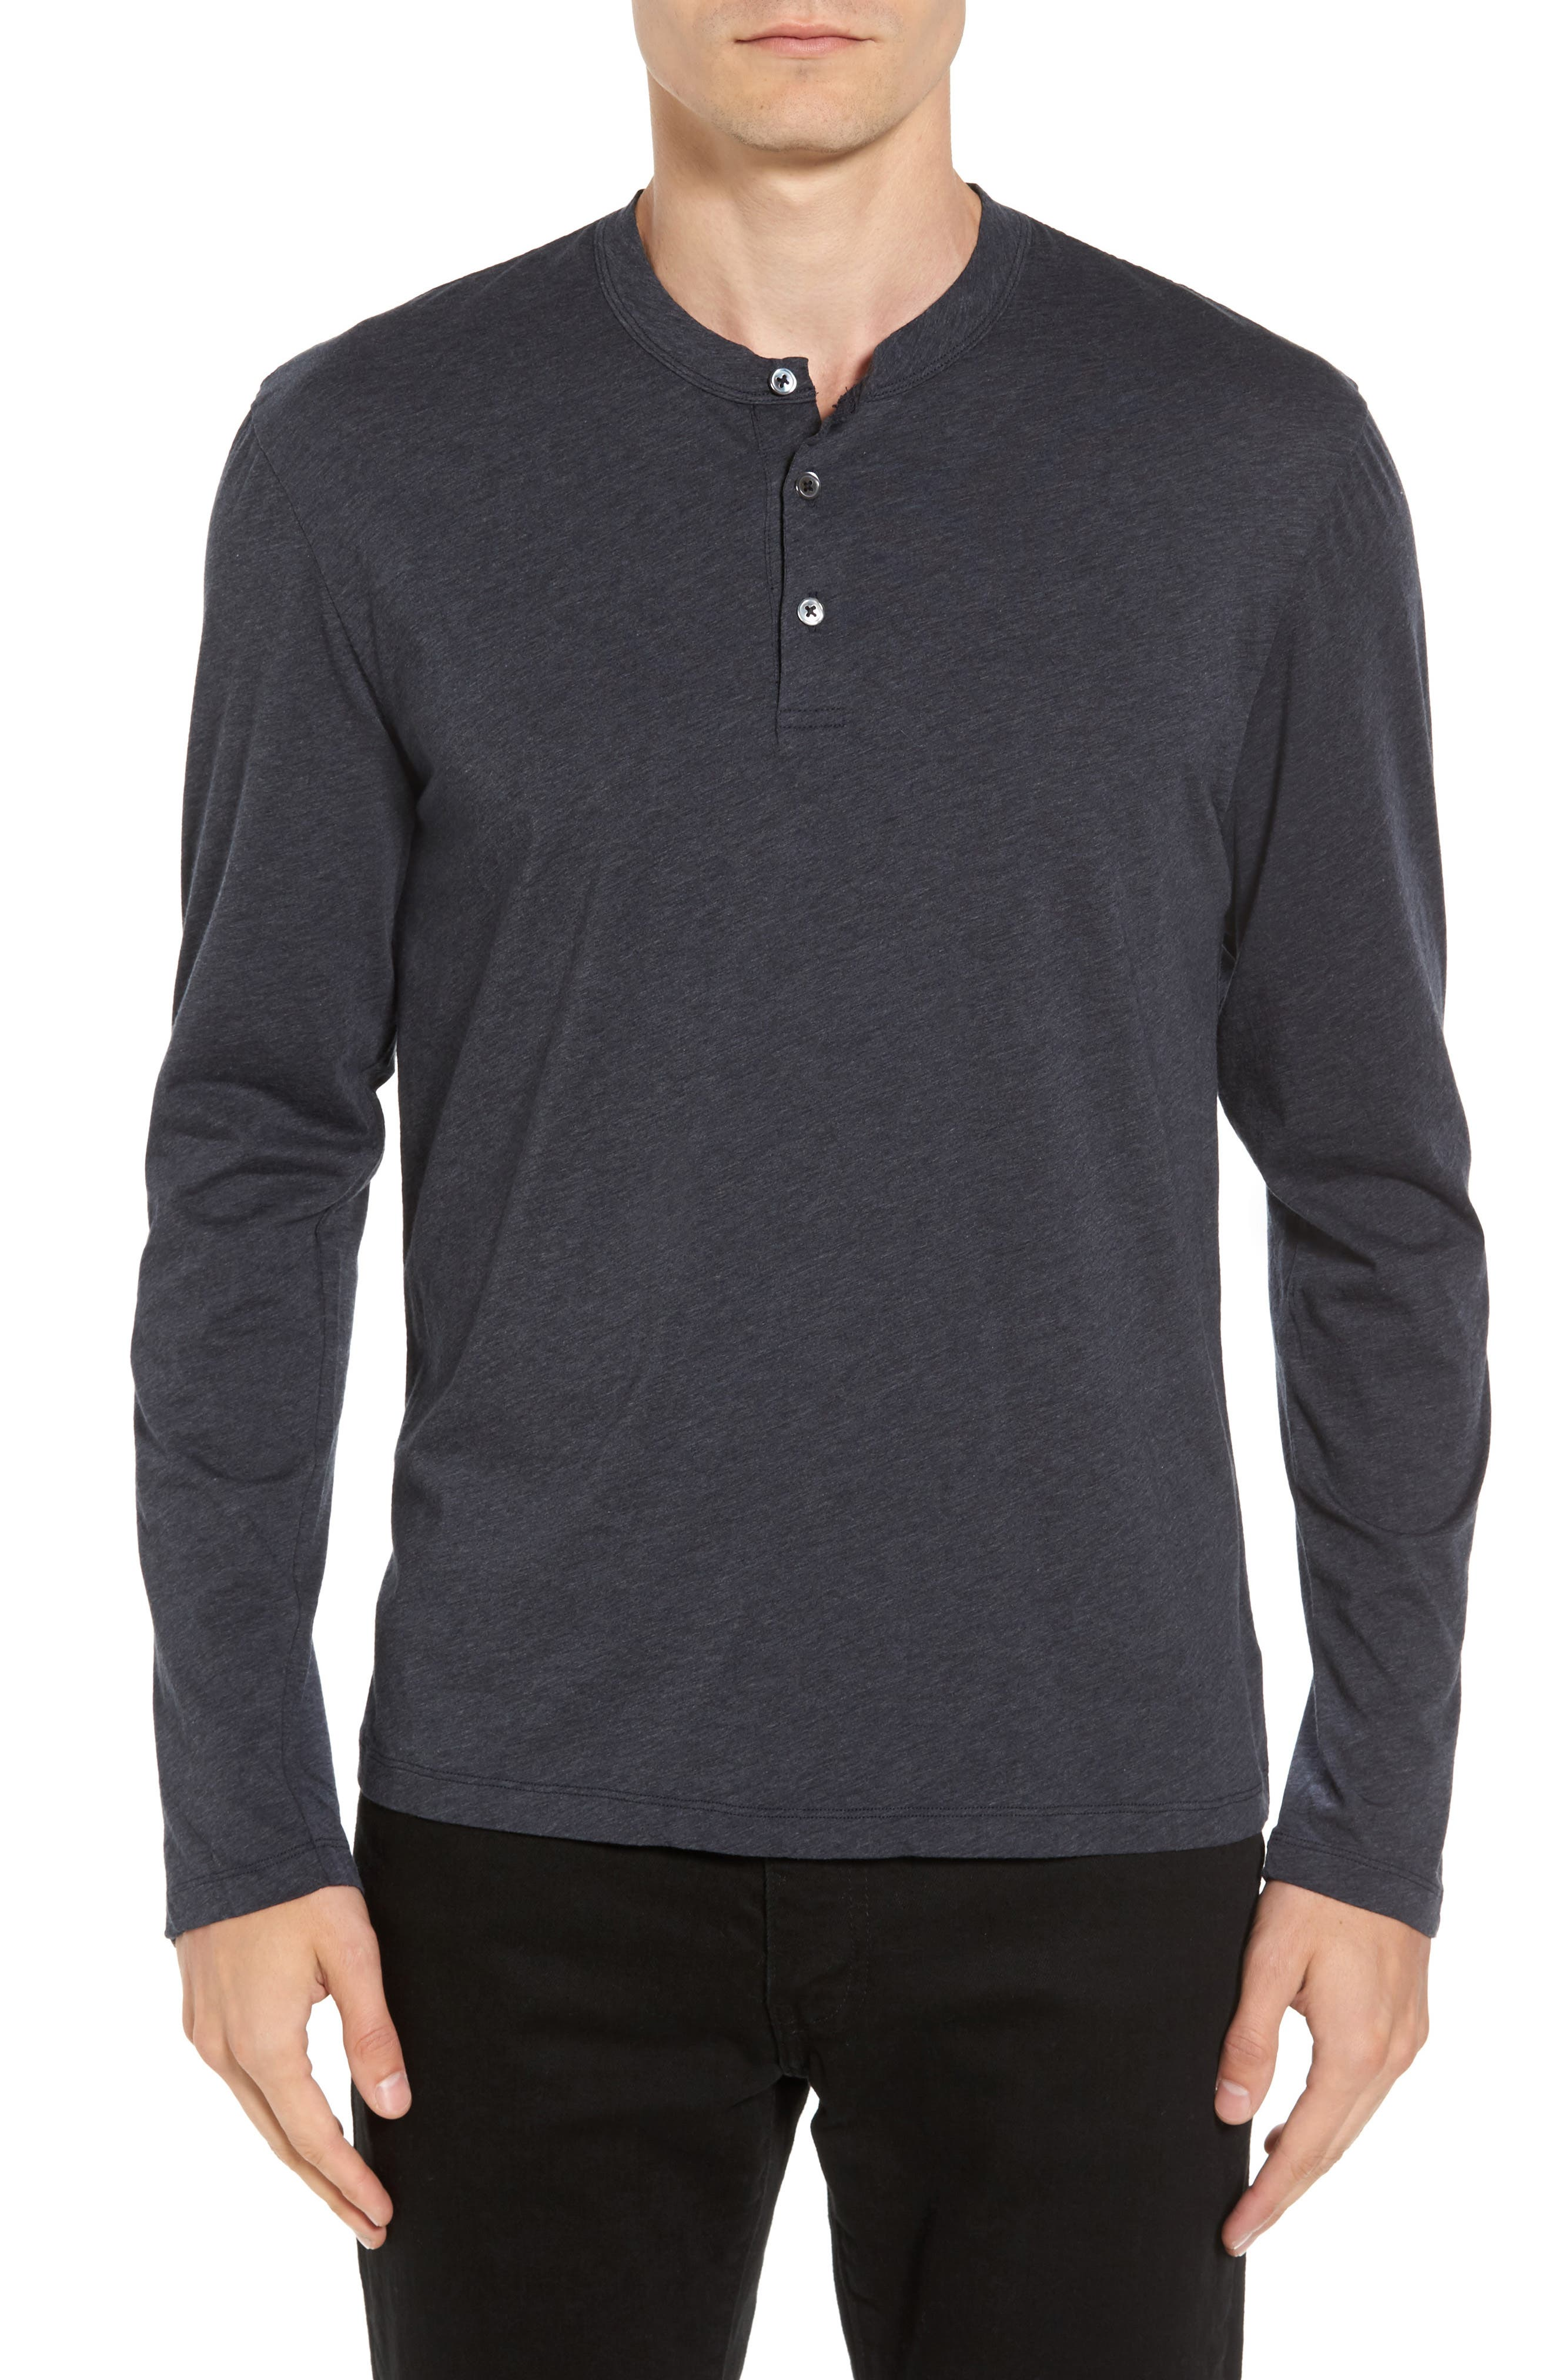 Alternate Image 1 Selected - James Perse Long Sleeve Cotton & Cashmere Henley T-Shirt